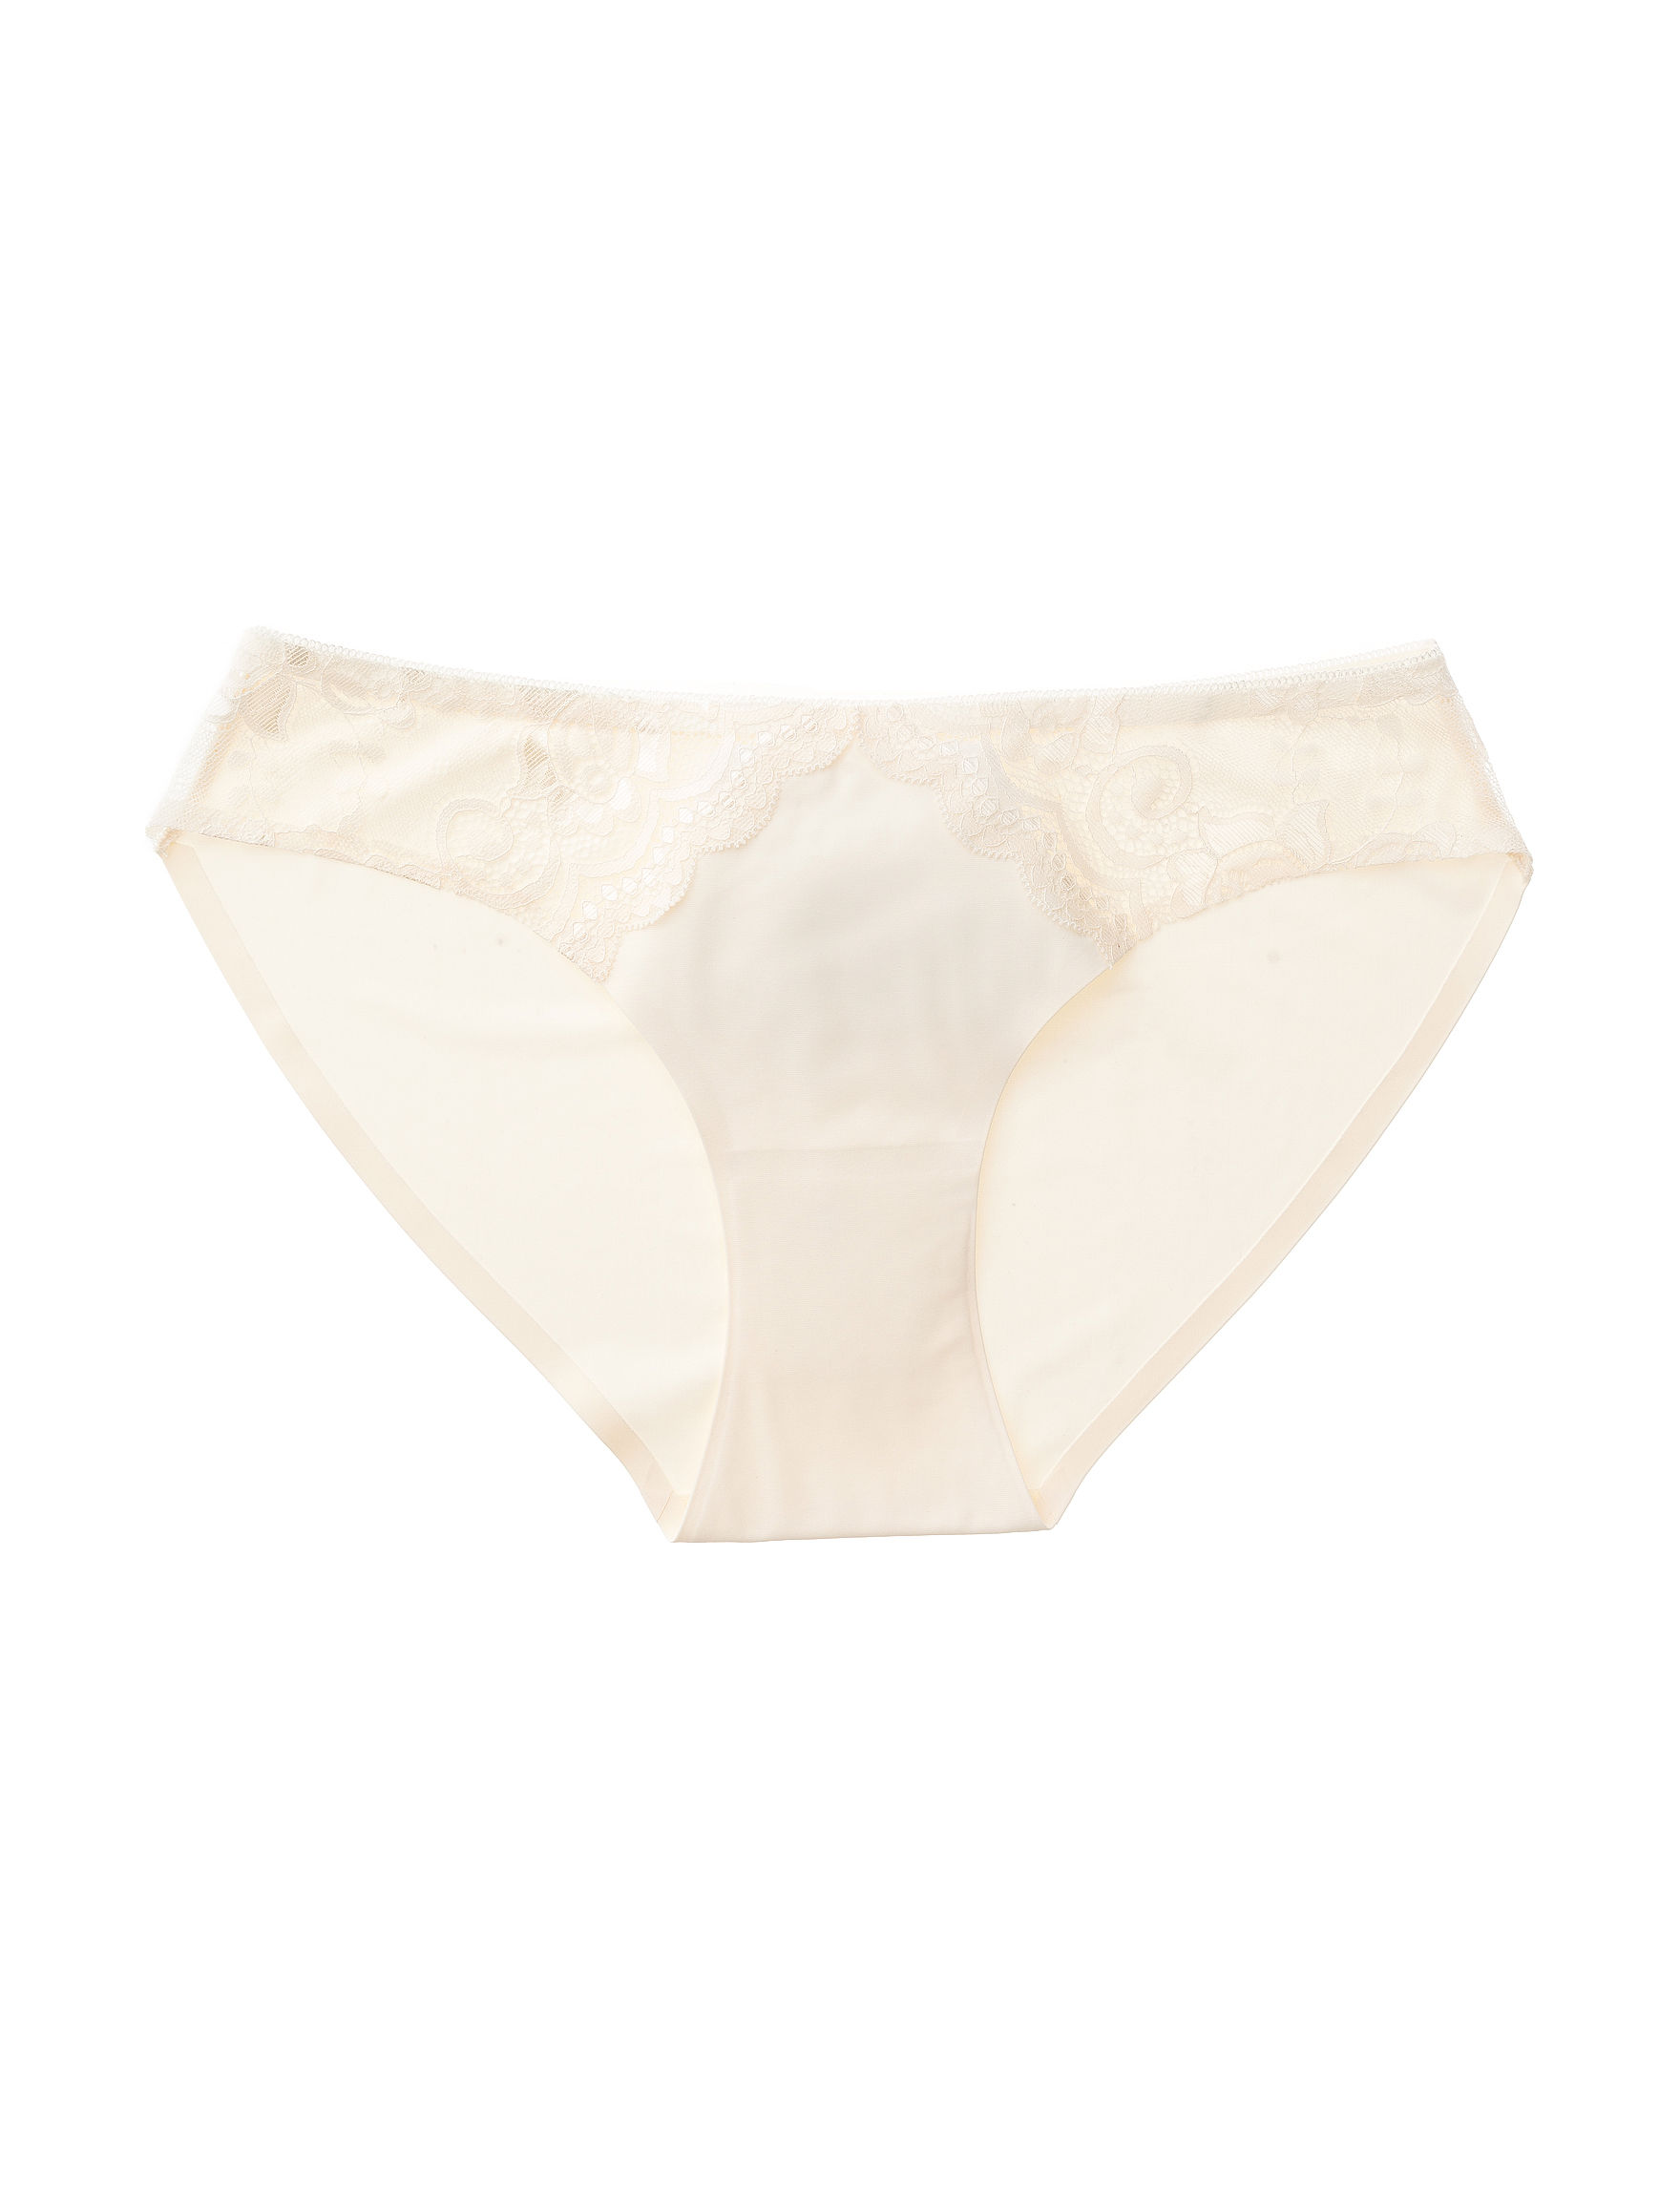 Rene Rofe Ivory Panties Bikini High Cut